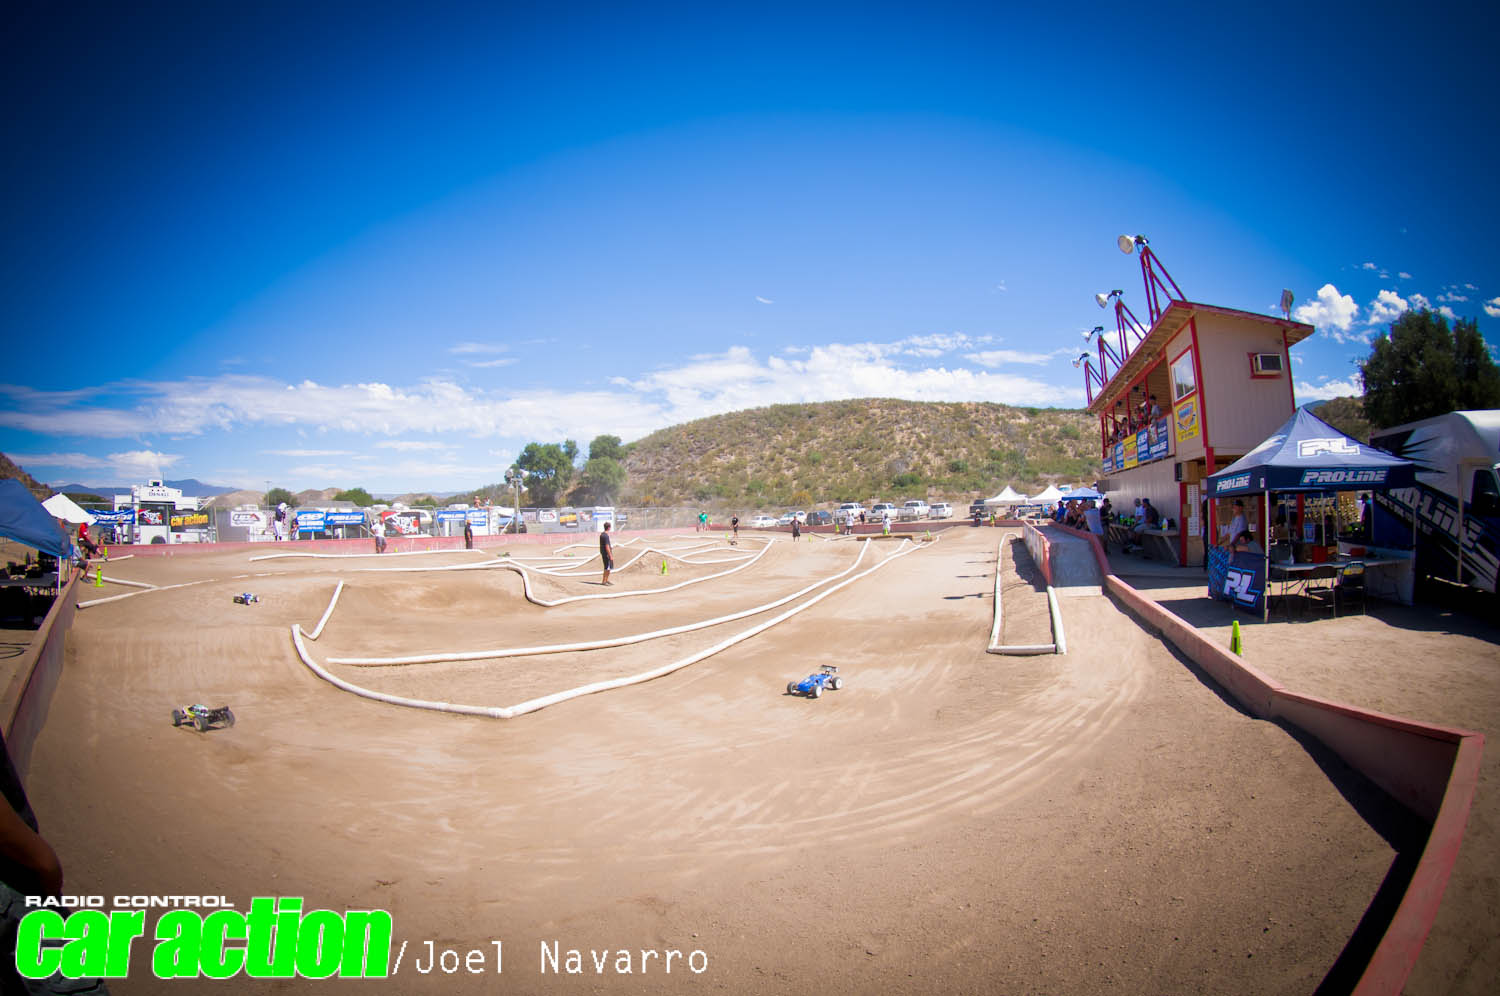 2012 Sidewinder Nitro Explosion Race Coverage – Over 100 Minutes of Racing Action! [Video]